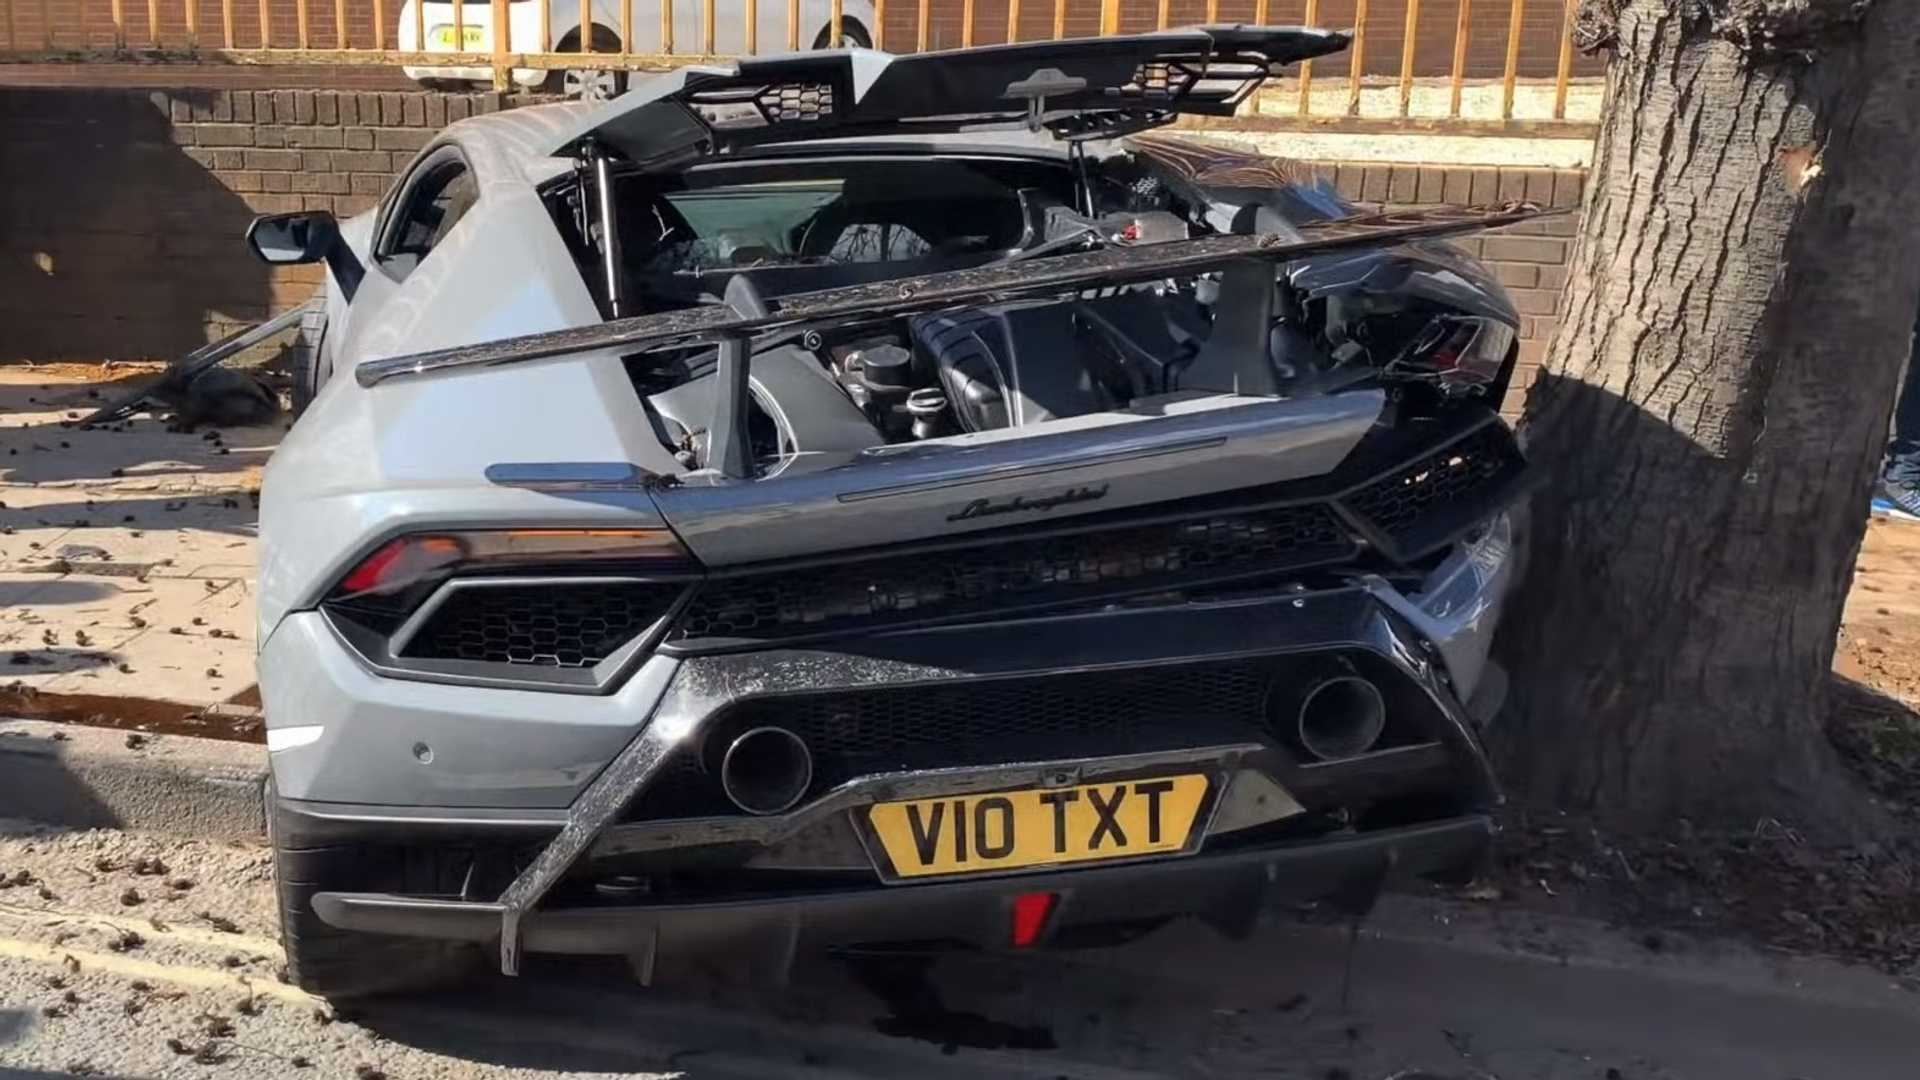 lamborghini-huracan-performante-crashes-at-supercar-meet.jpg